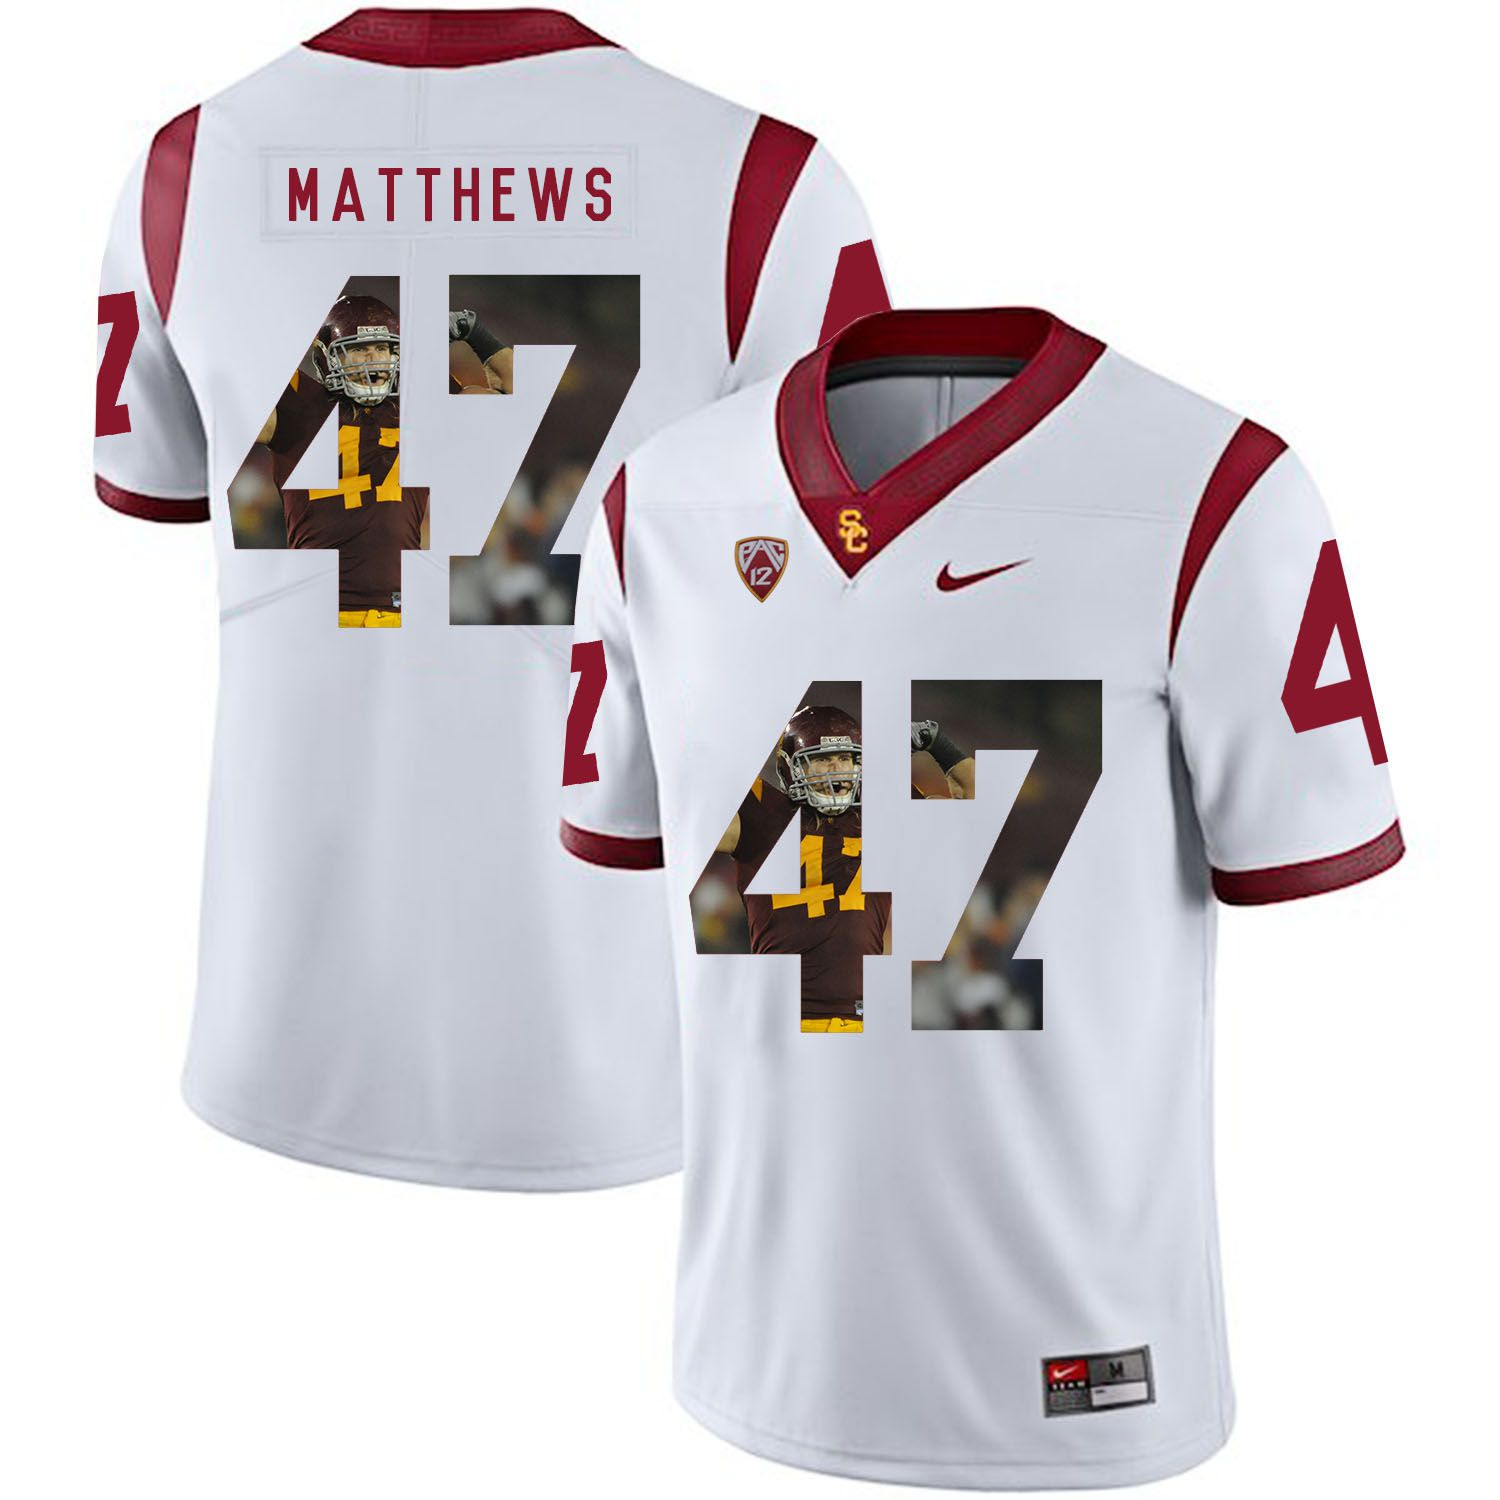 Men USC Trojans 47 Matthews White Fashion Edition Customized NCAA Jerseys